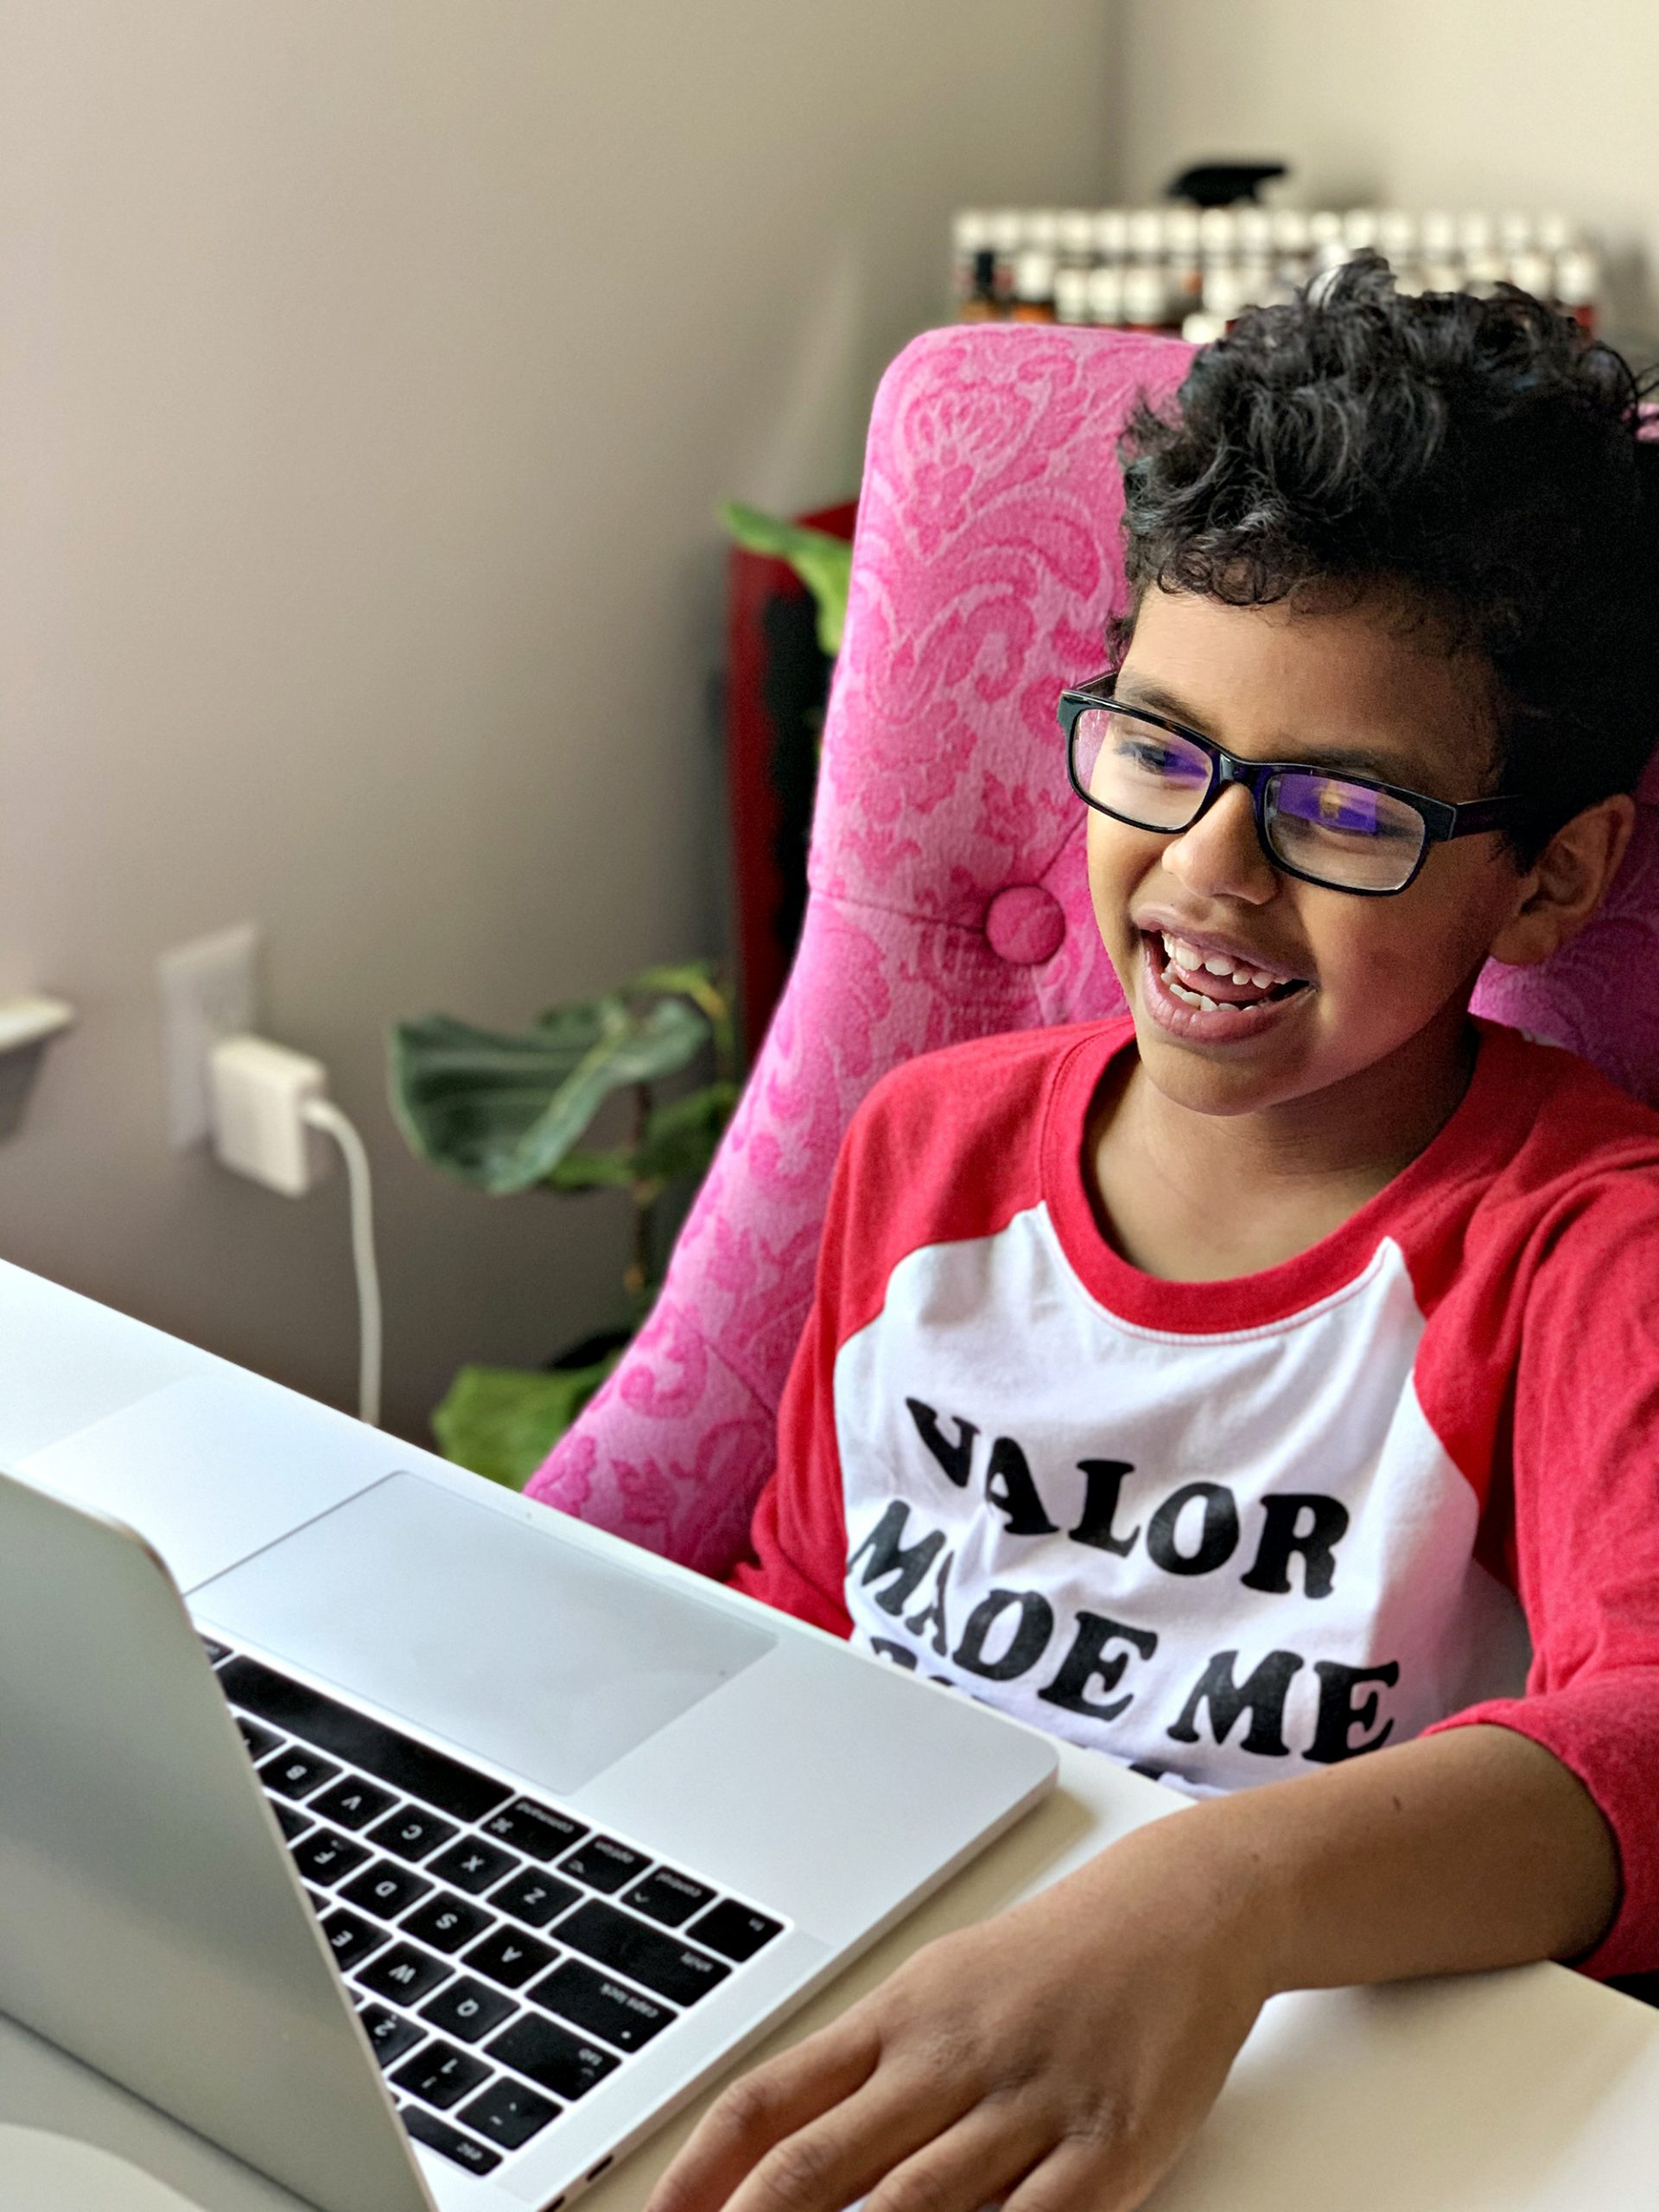 A smiling boy with glasses looking at an exciting digital learning program on a laptop.